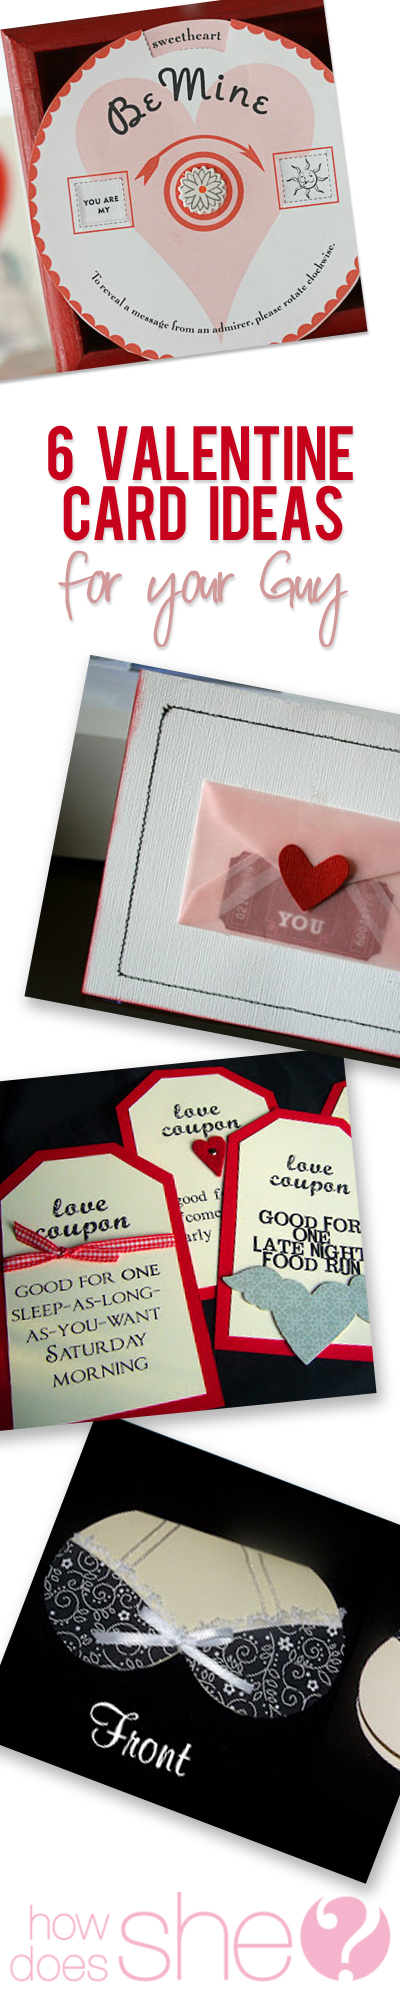 Valentine Card ideas for your Guy